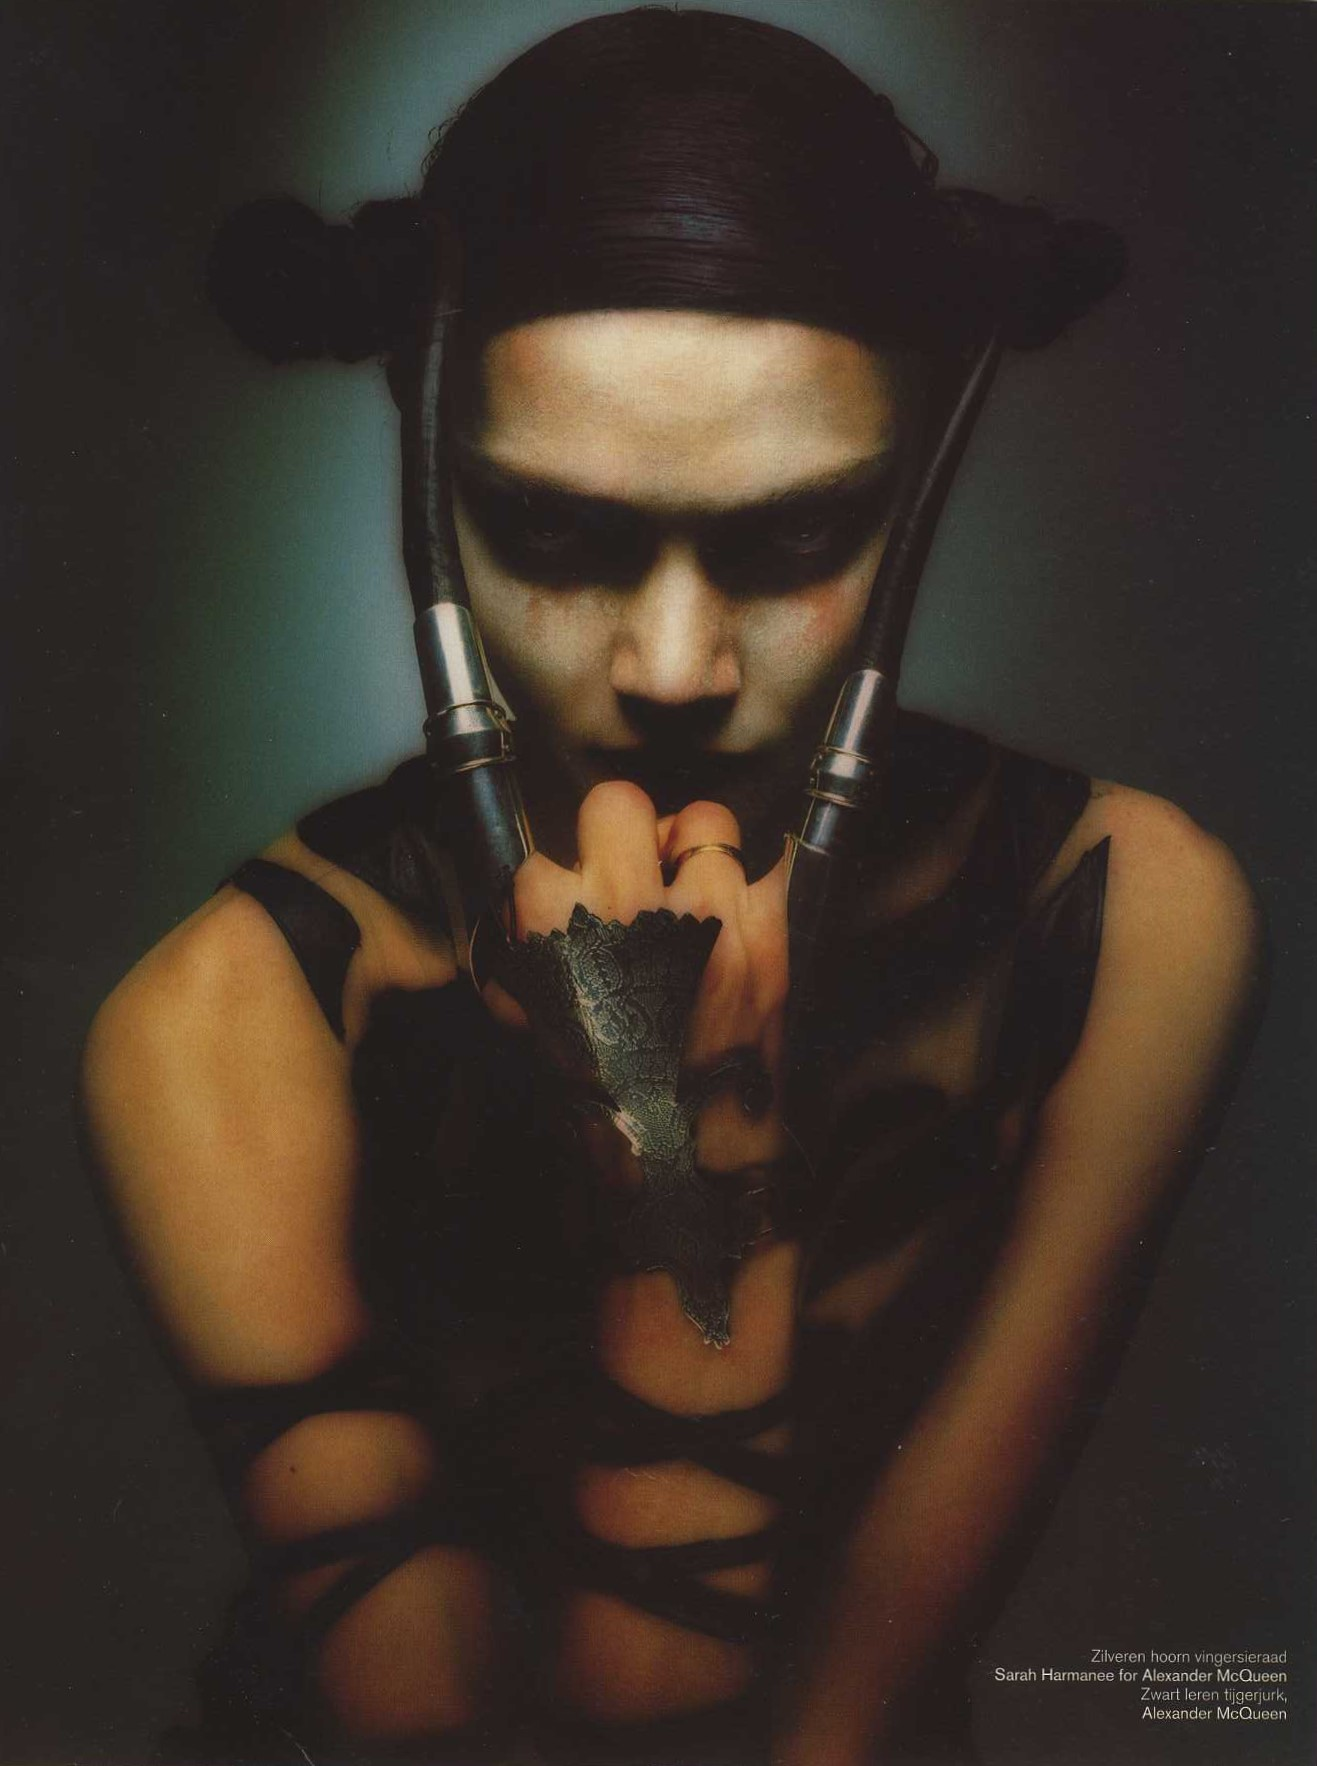 angloalien photography sean ellis styling isabella blow dutch 12 autumn 1997 3